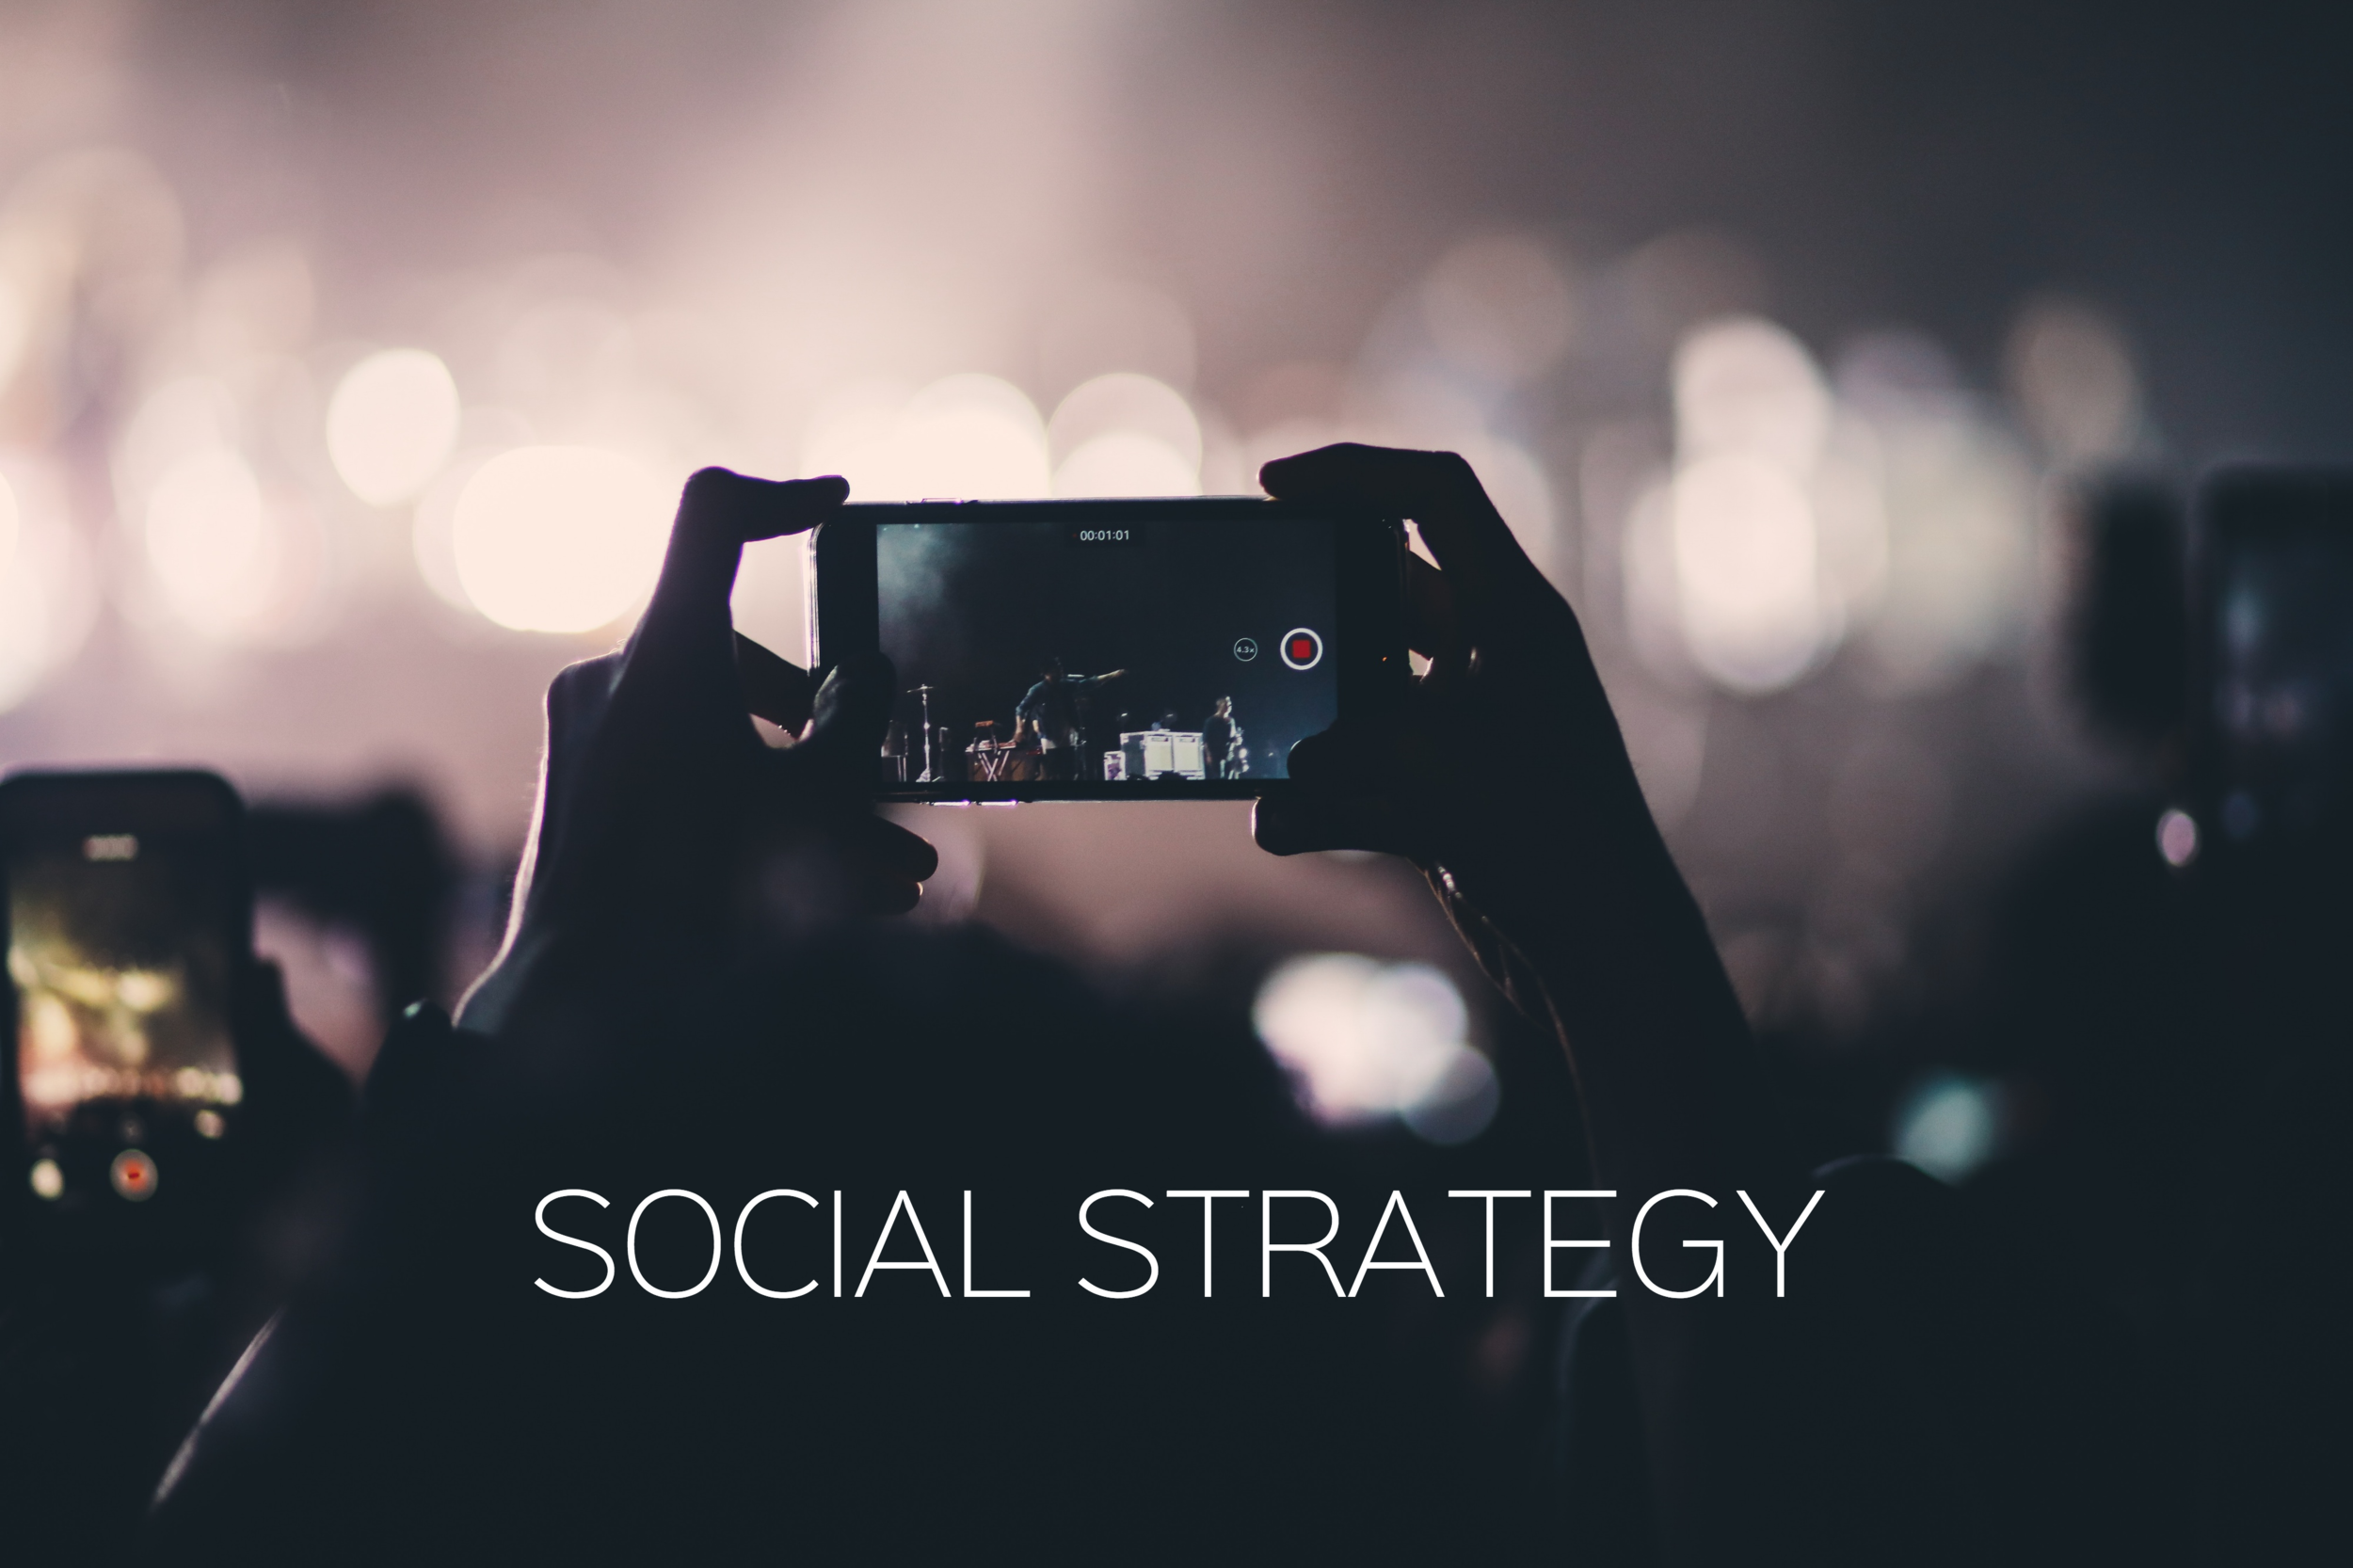 SOCIAL STRATEGYelliot-teo-379059-unsplash.png